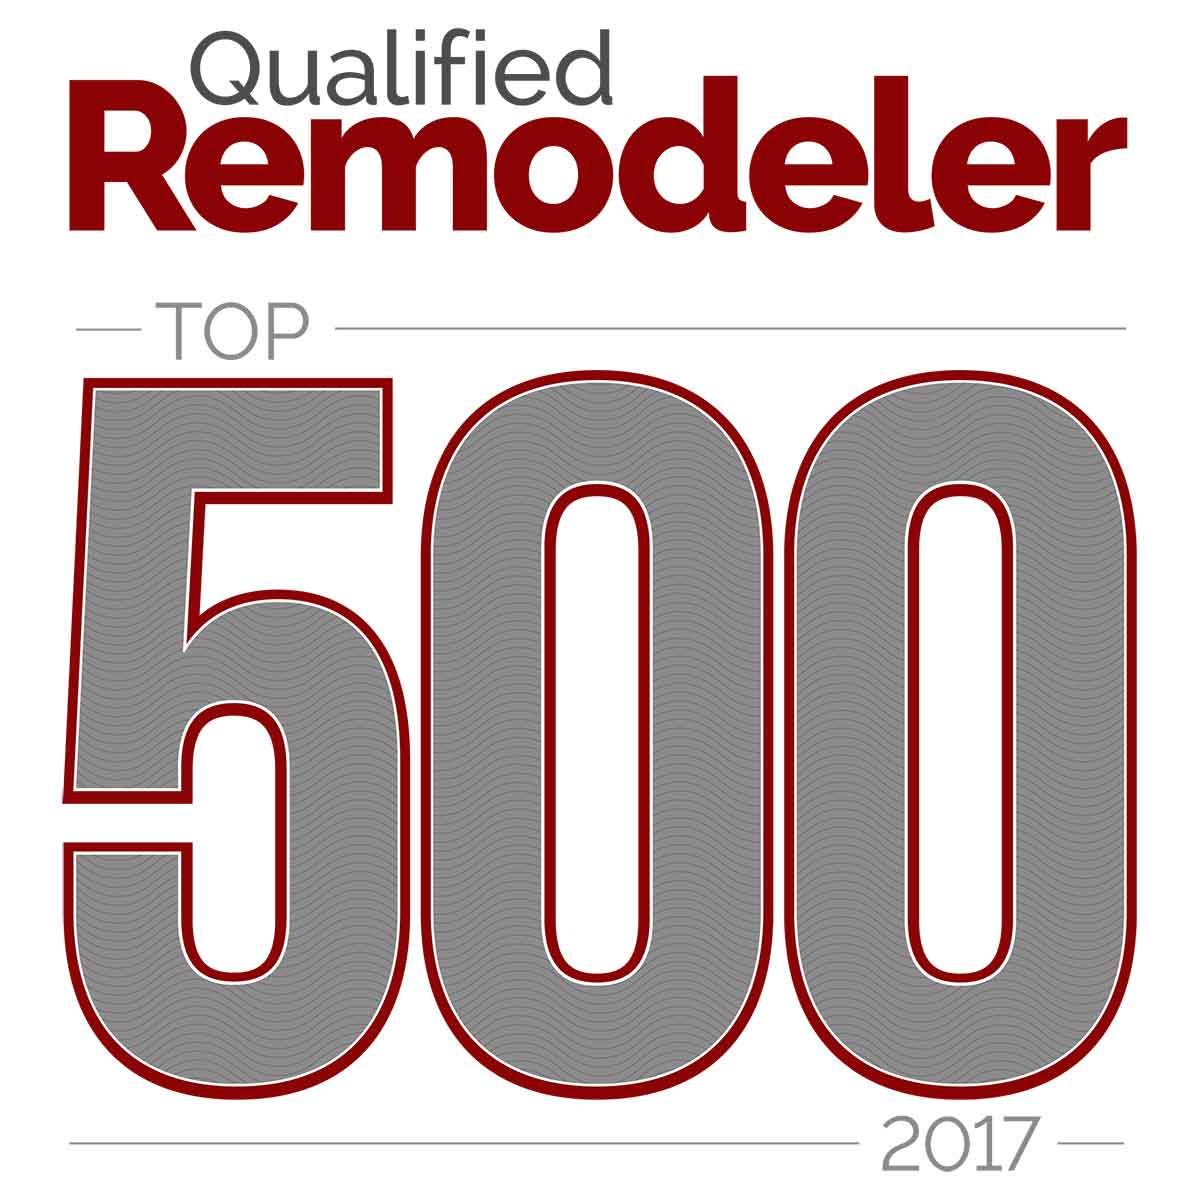 System Pavers Awards - Qualified Remodeler